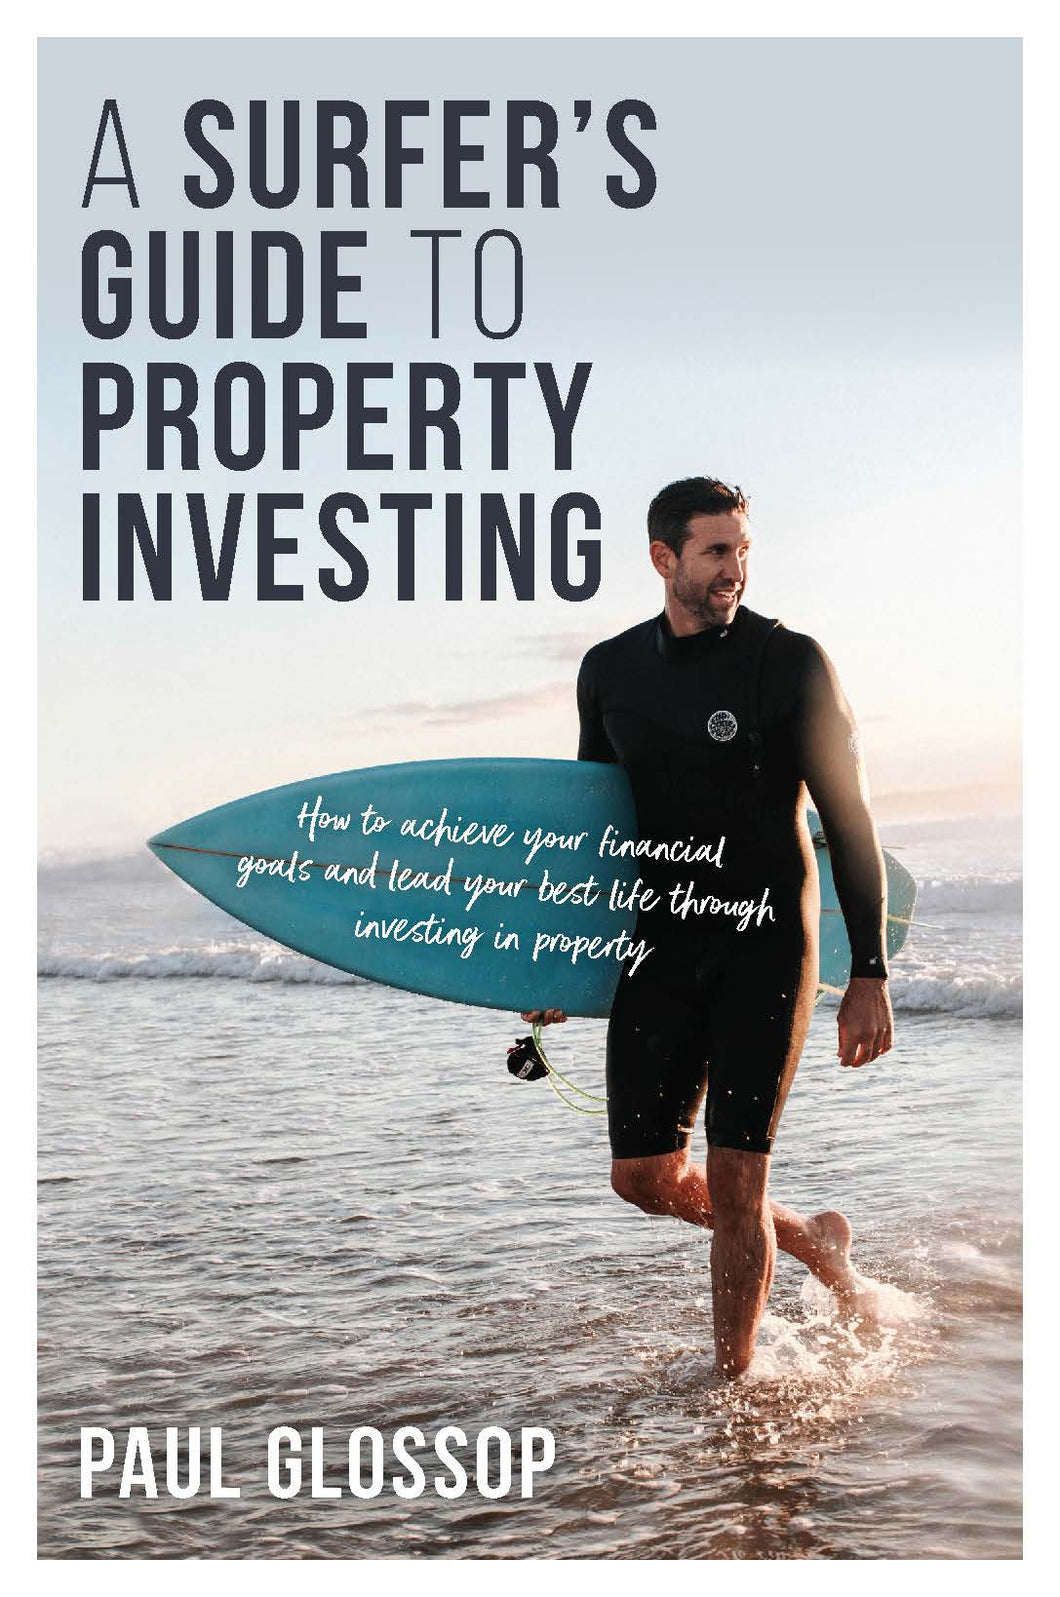 The book cover of A Surfer's Guide to Property Investing by Paul Glossop